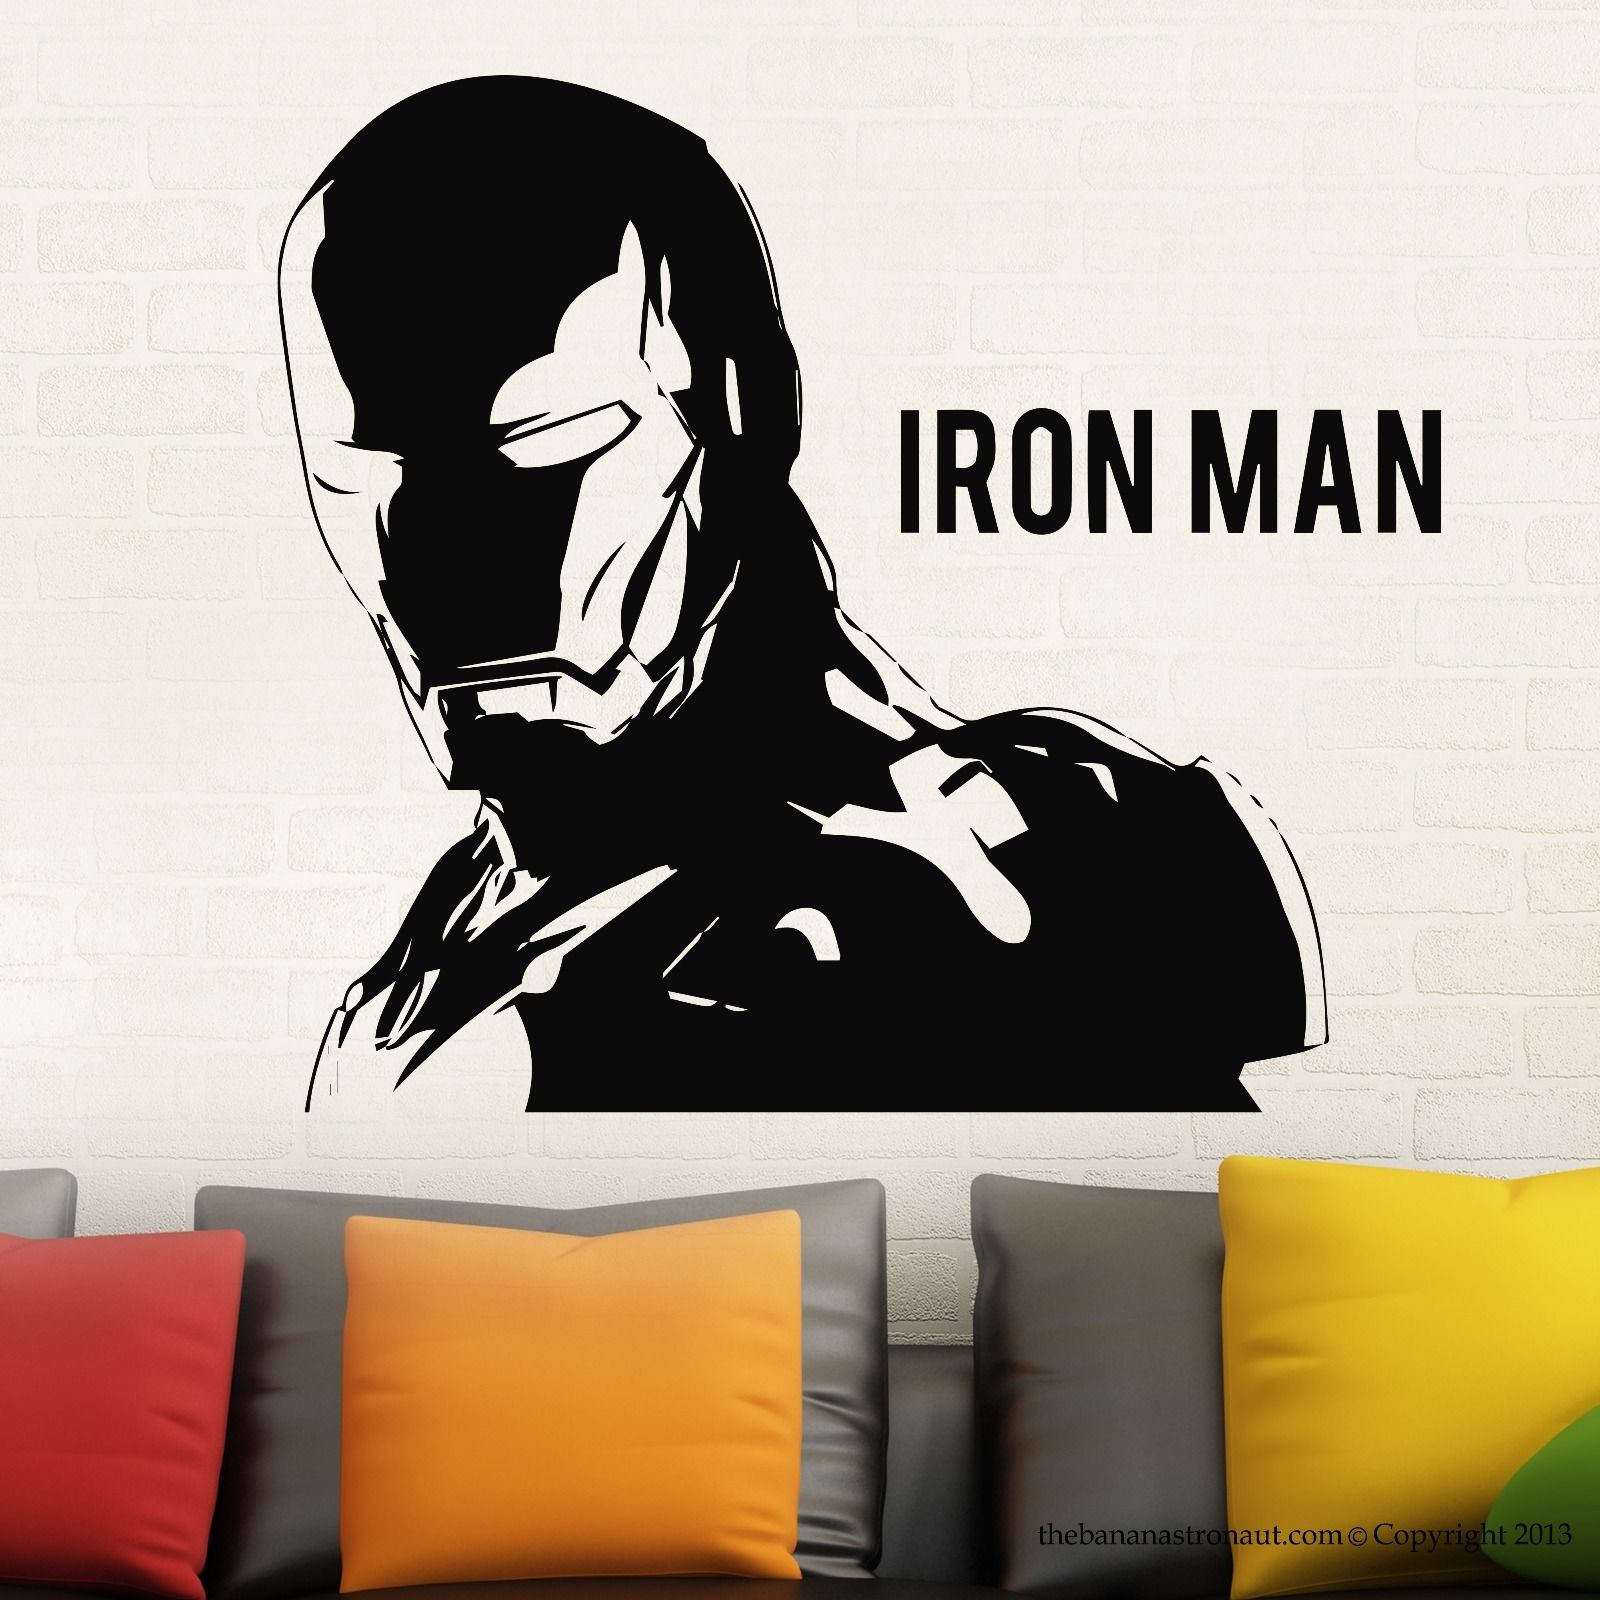 IRONMAN Wall Decal Stickers Marvel Comics Decor Stickers Modern Vinyl Black Free Shipping